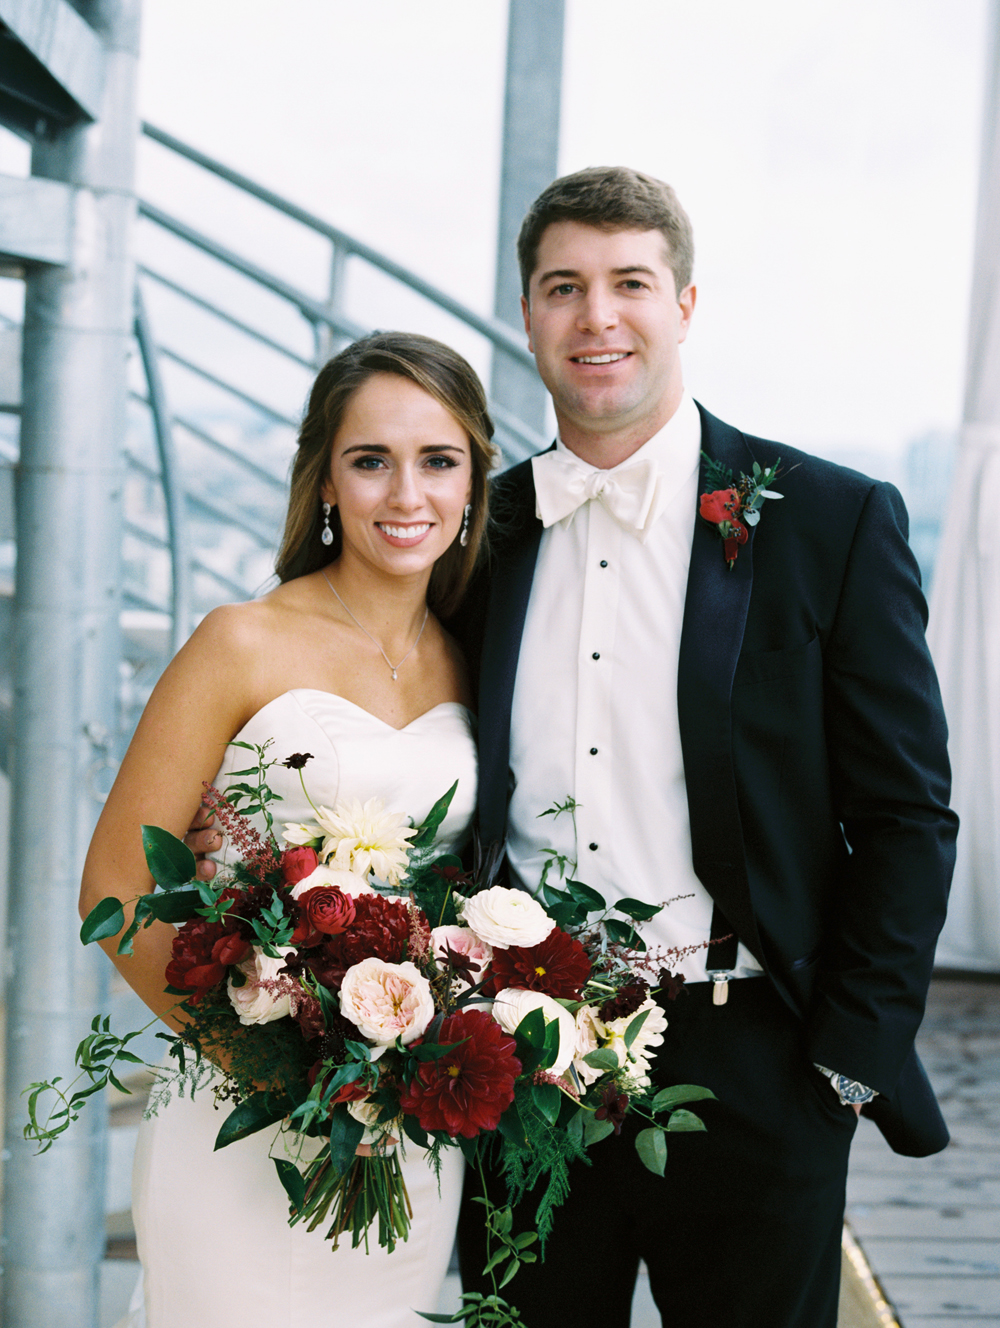 Rooftop bride and groom portraits // Nashville Wedding Floral Design